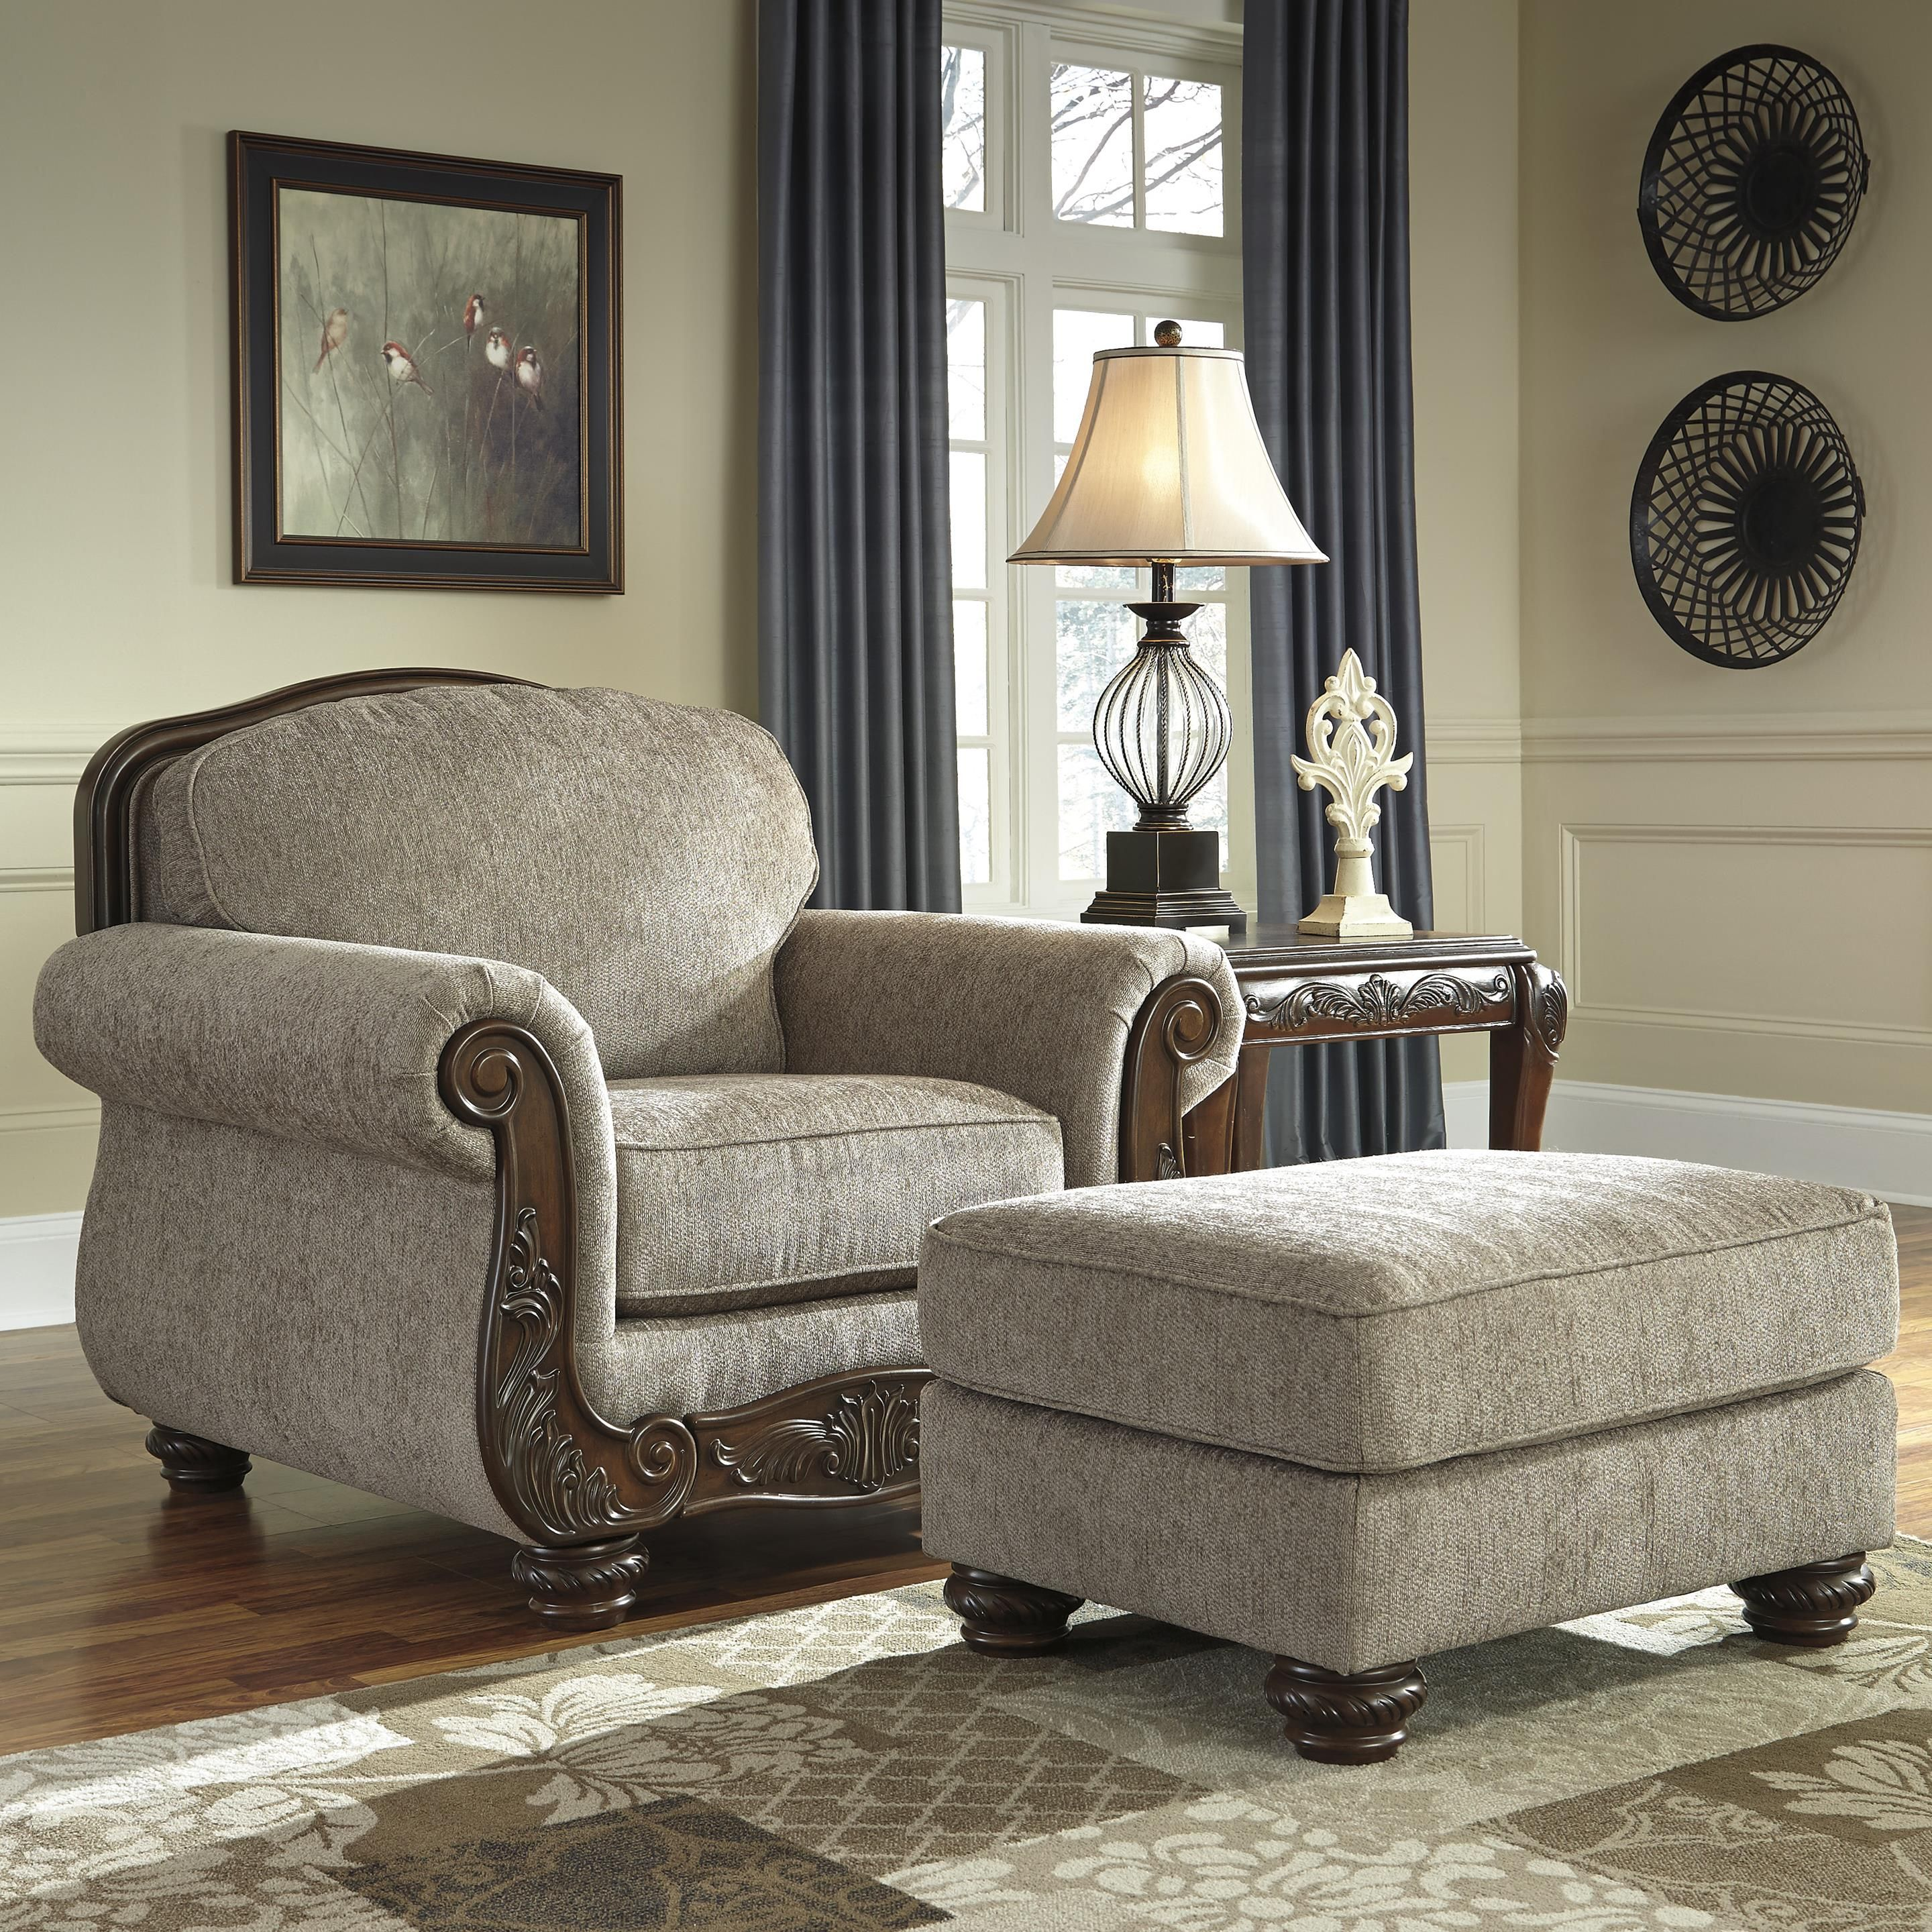 Furniture Living Room Seating Ottomans Traditional